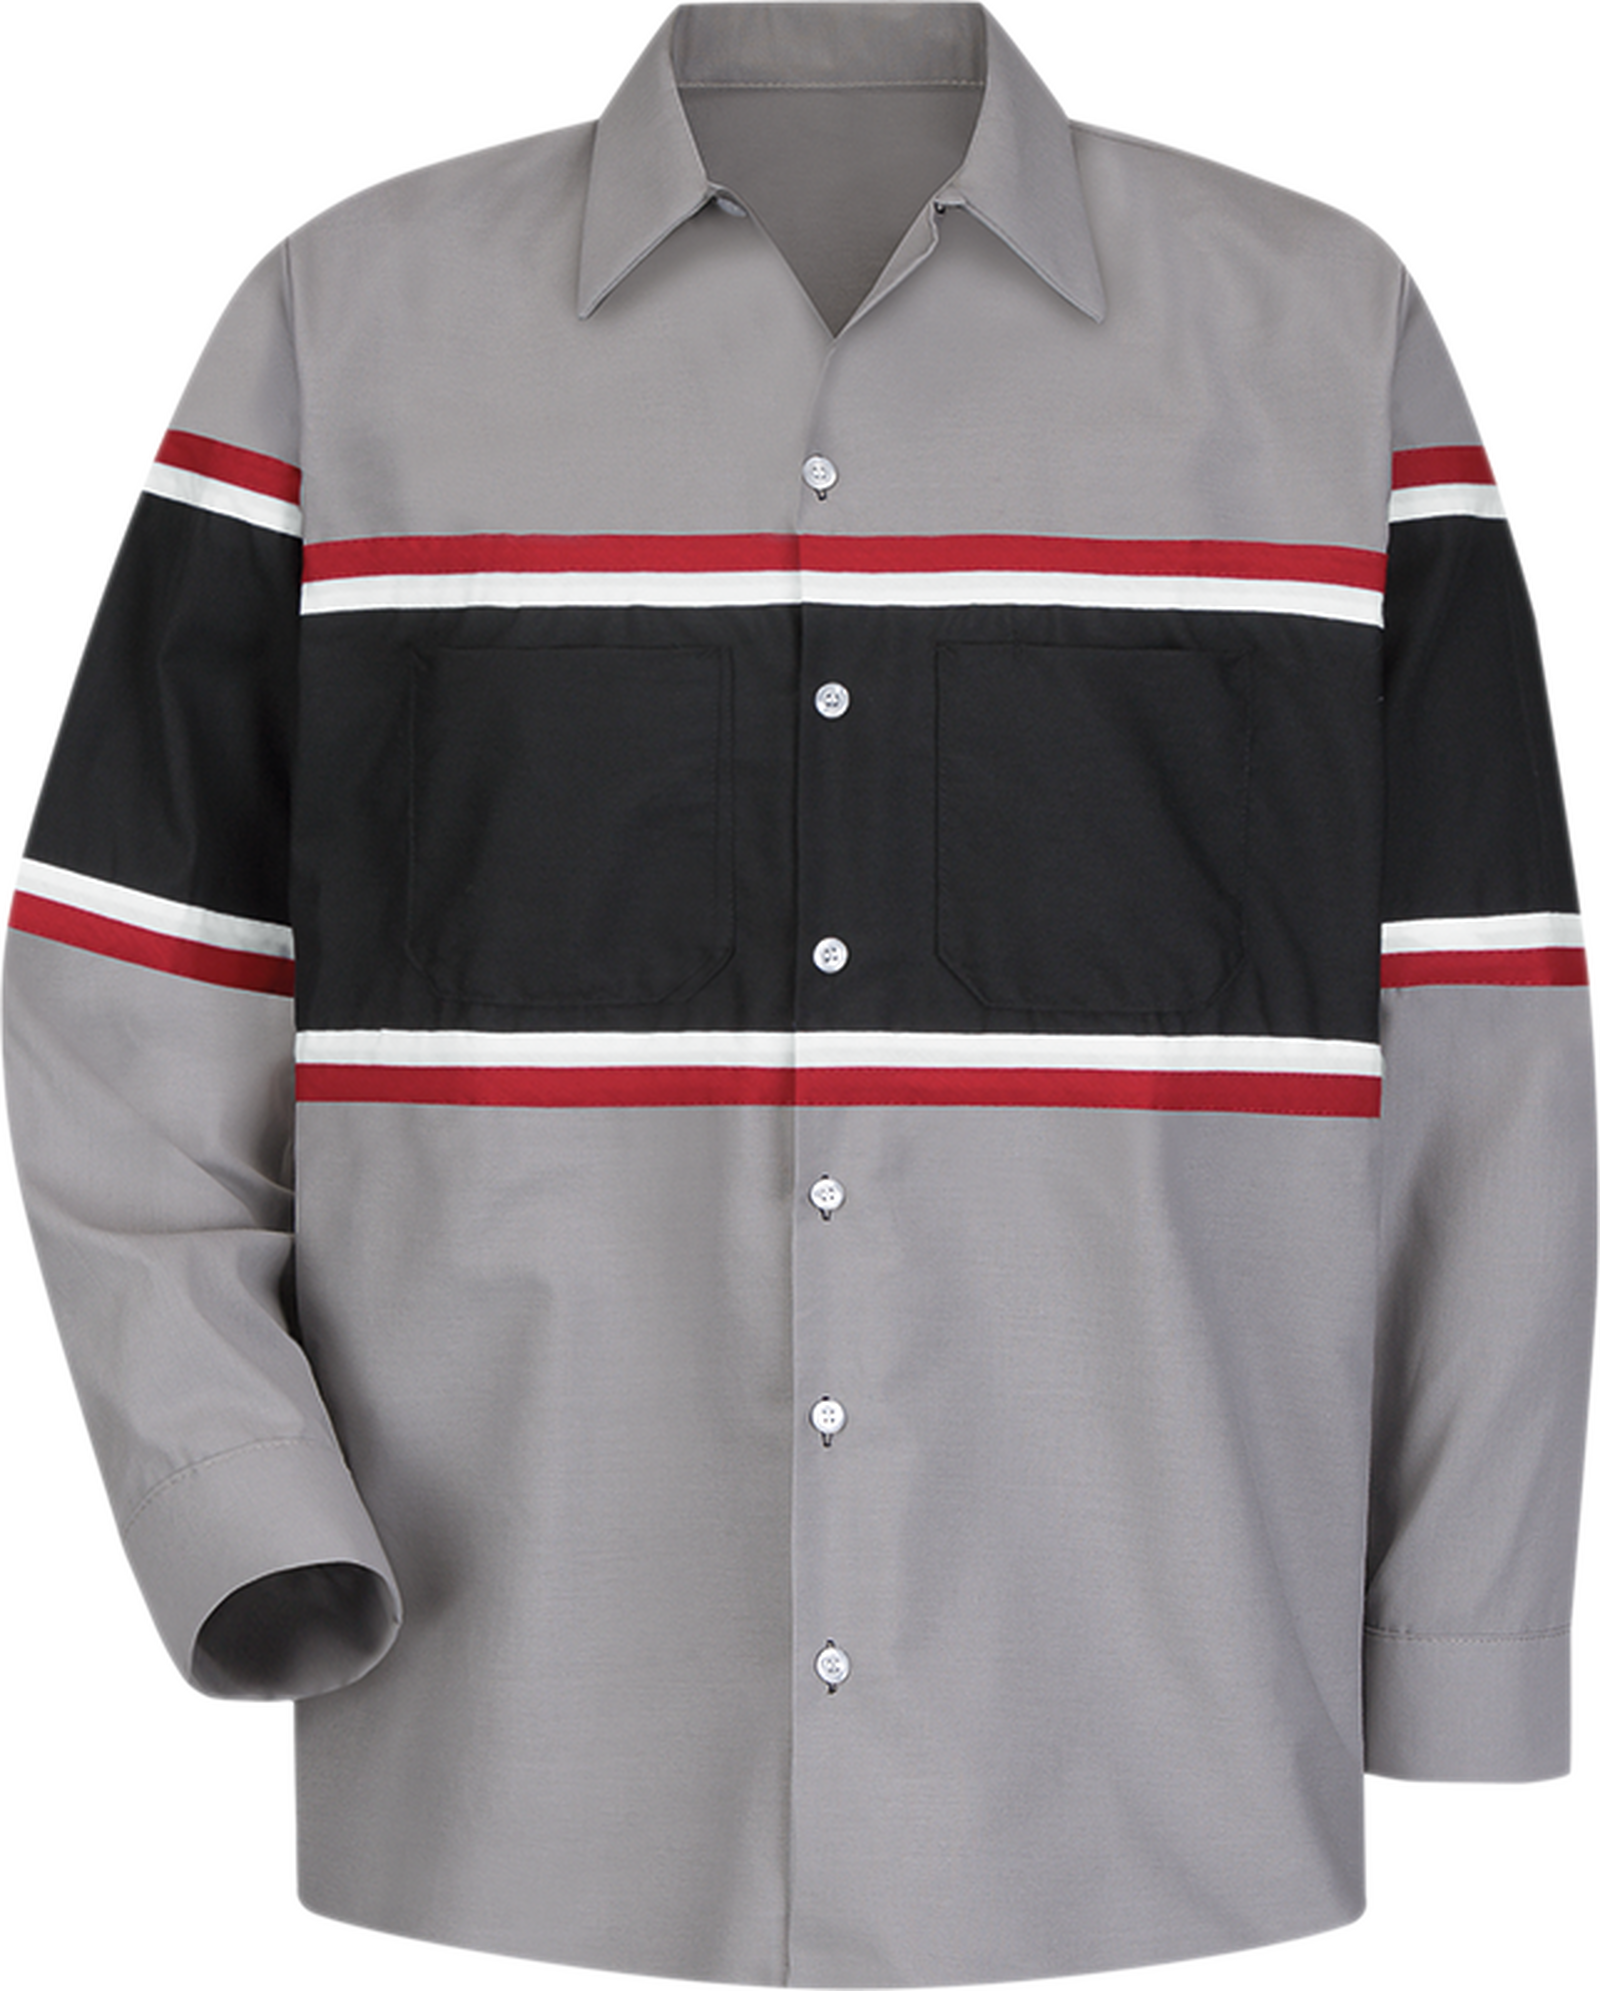 Men's Long Sleeve Technician Shirt